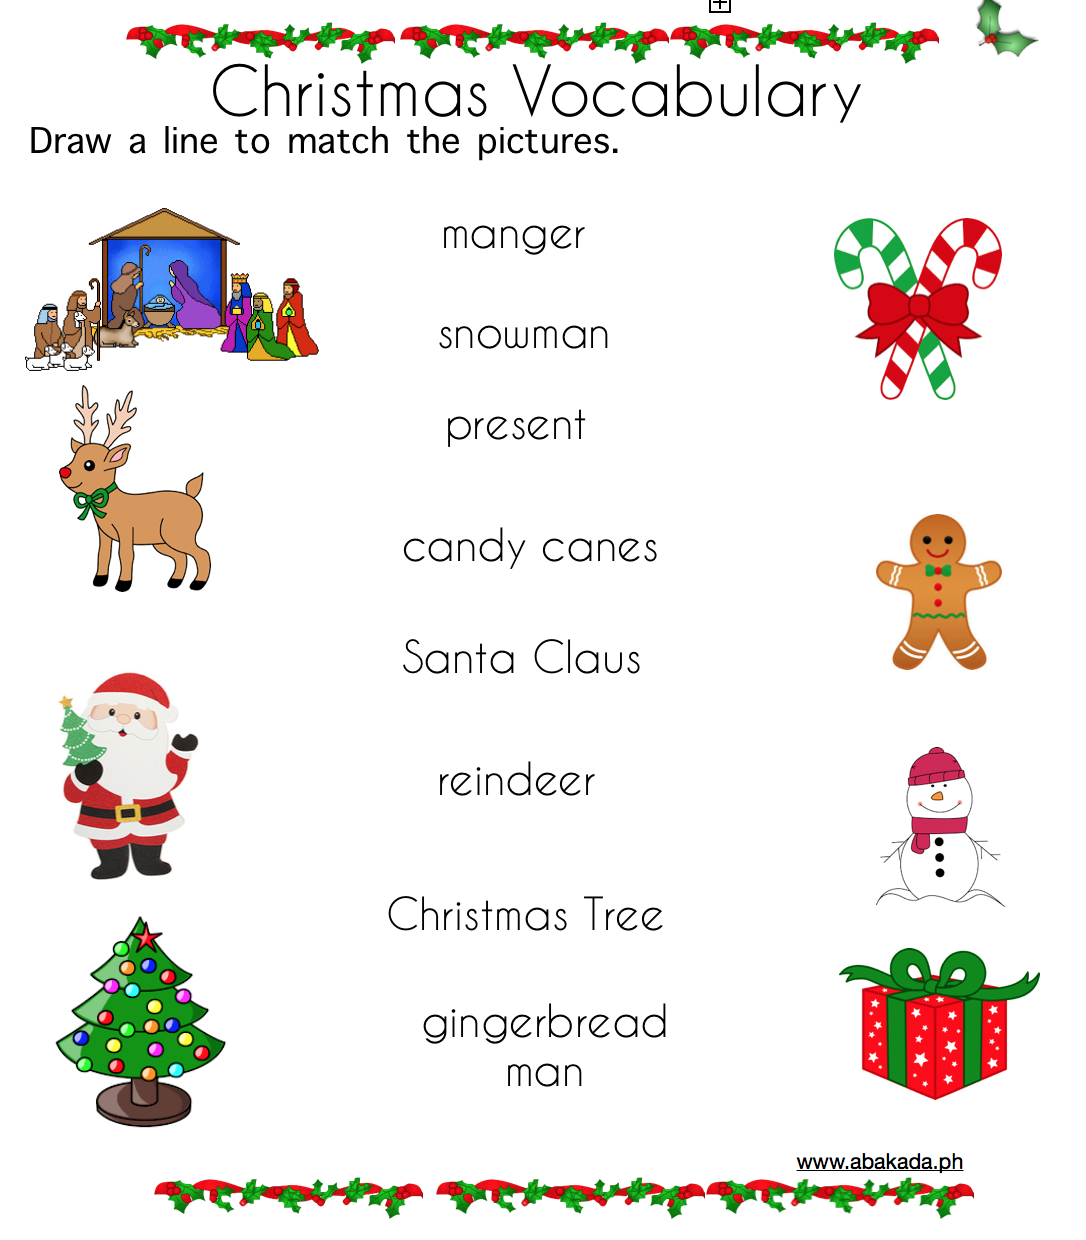 Christmas Vocabulary Worksheets For Preschoolers With